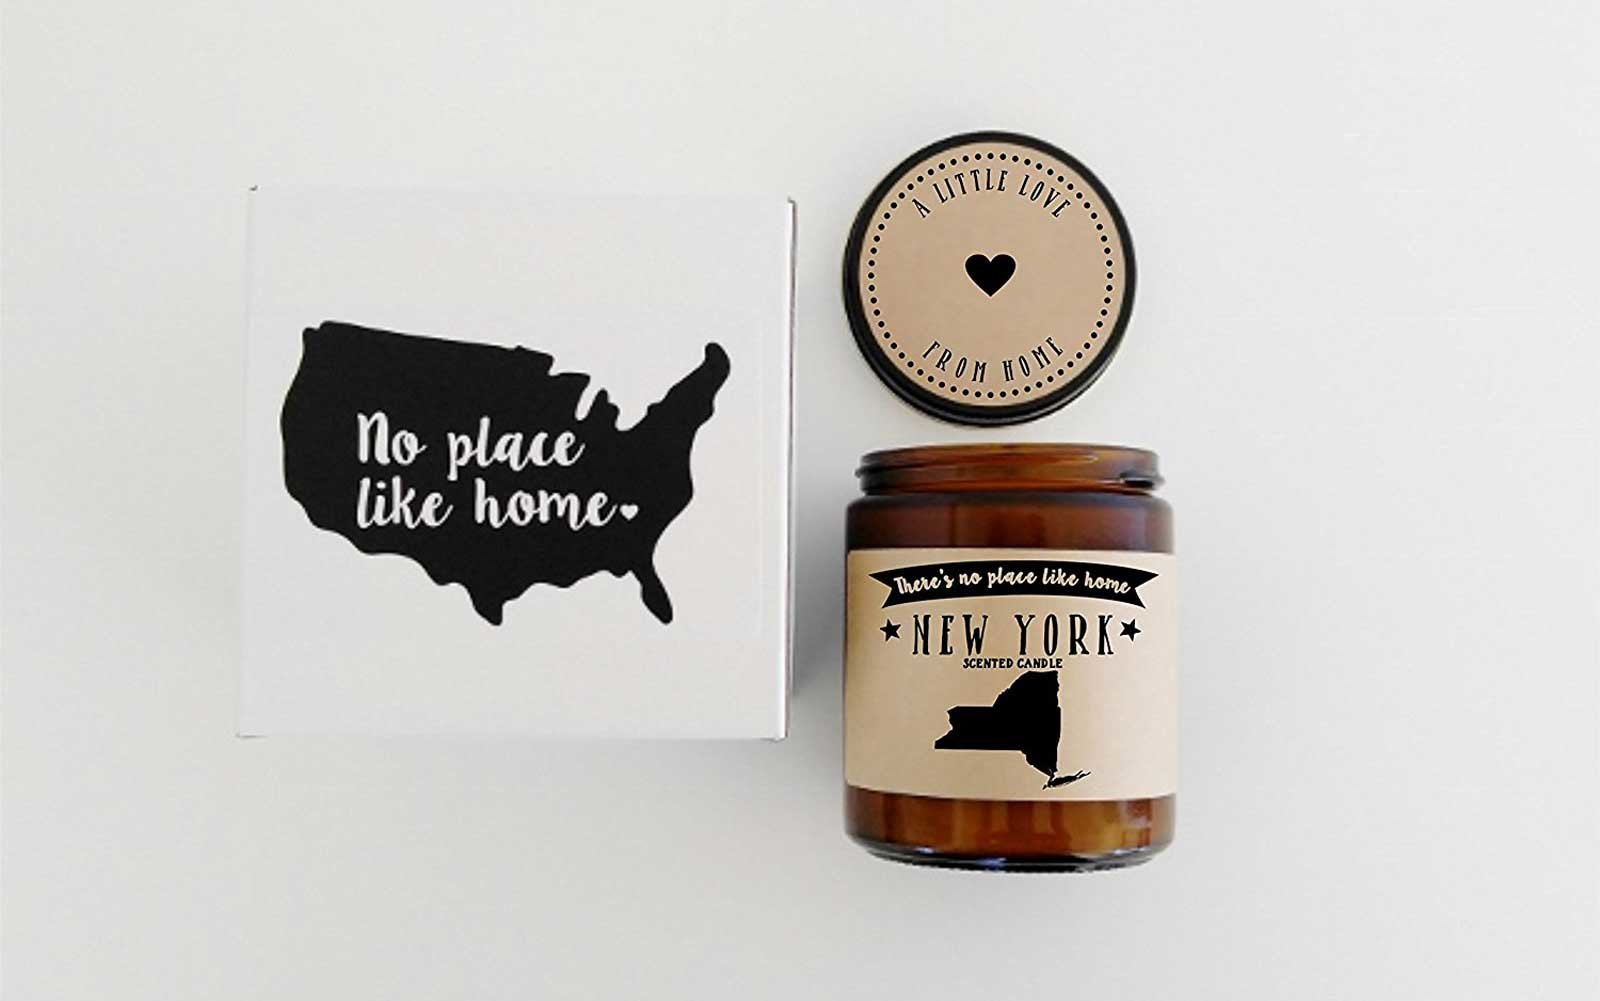 Missing Home Scented Candles